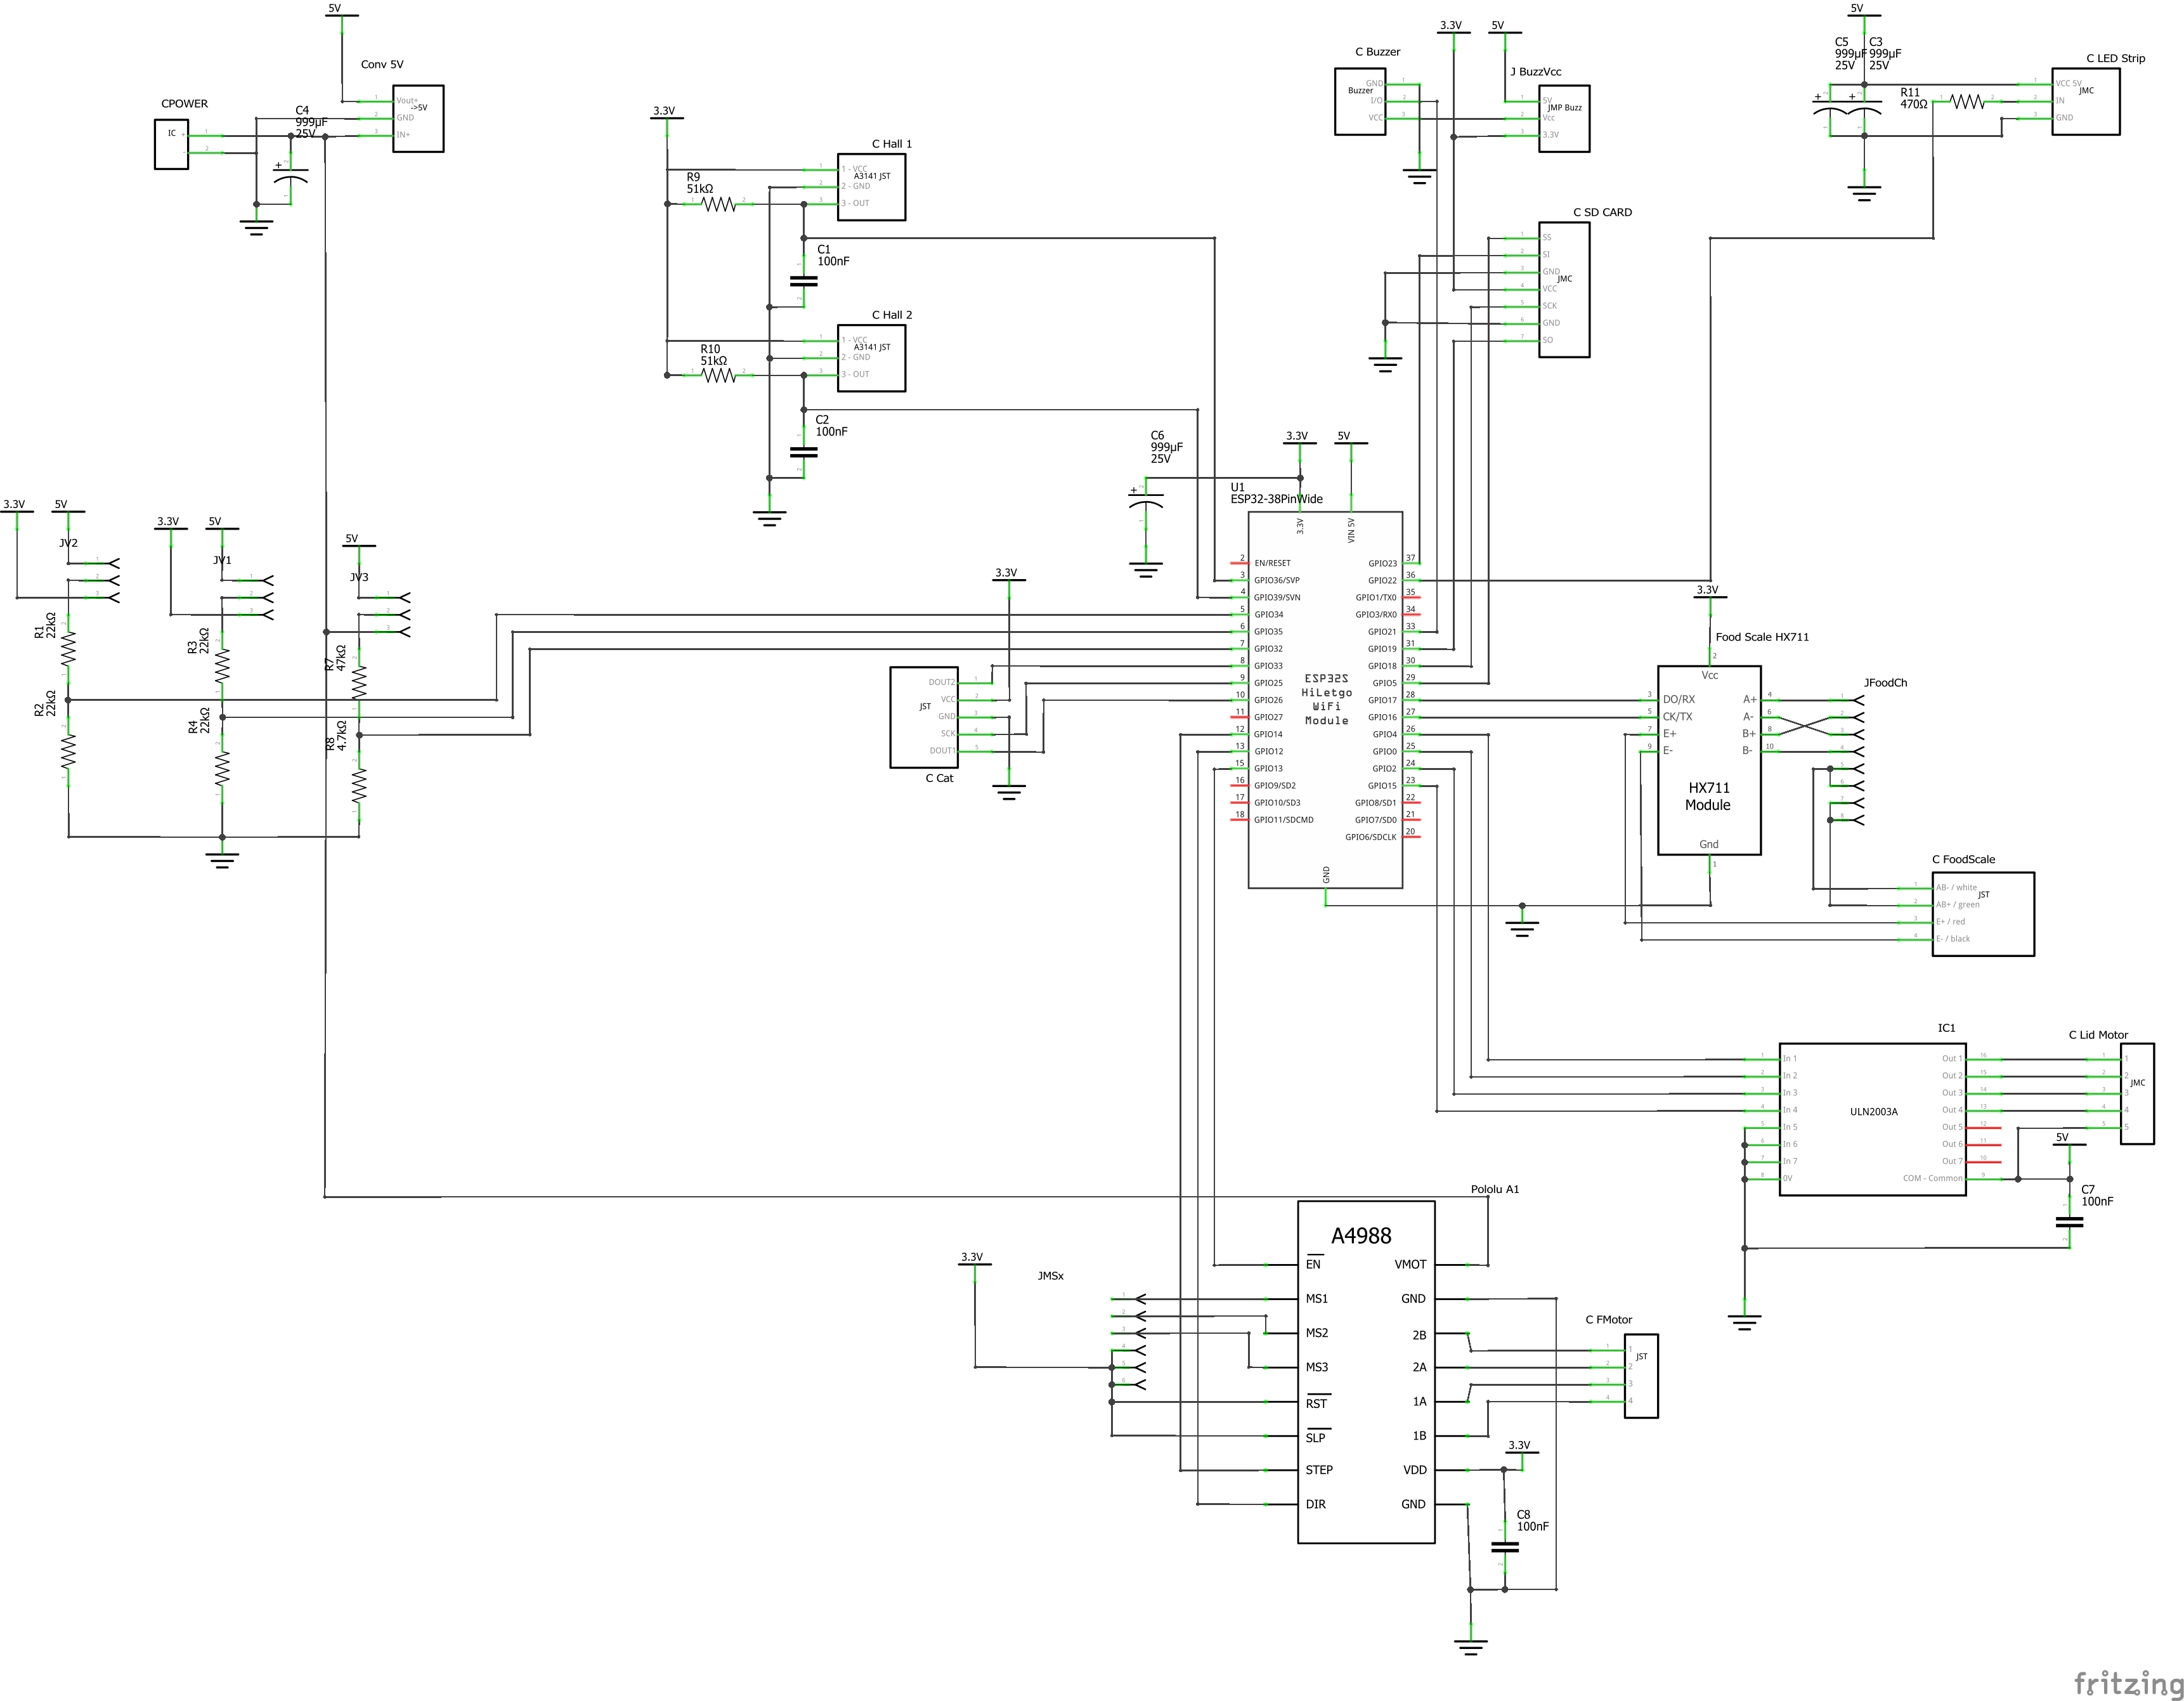 Schematic of the ultimate cloud cat feeder